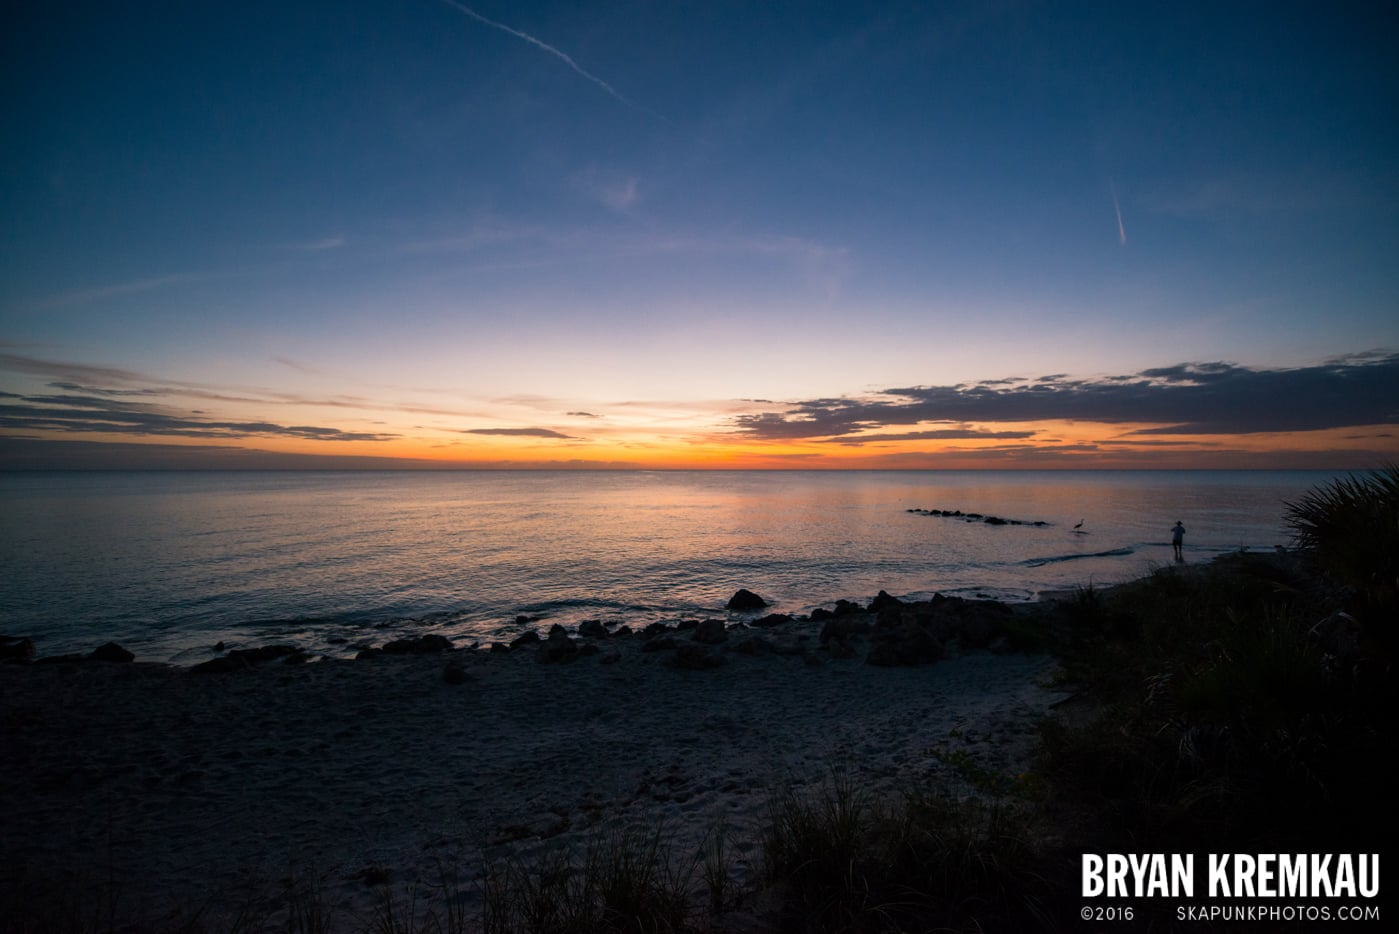 Sunsets, Astrophotography & Birds @ Venice, Florida - 10.25.14 - 11.5.14 (56)